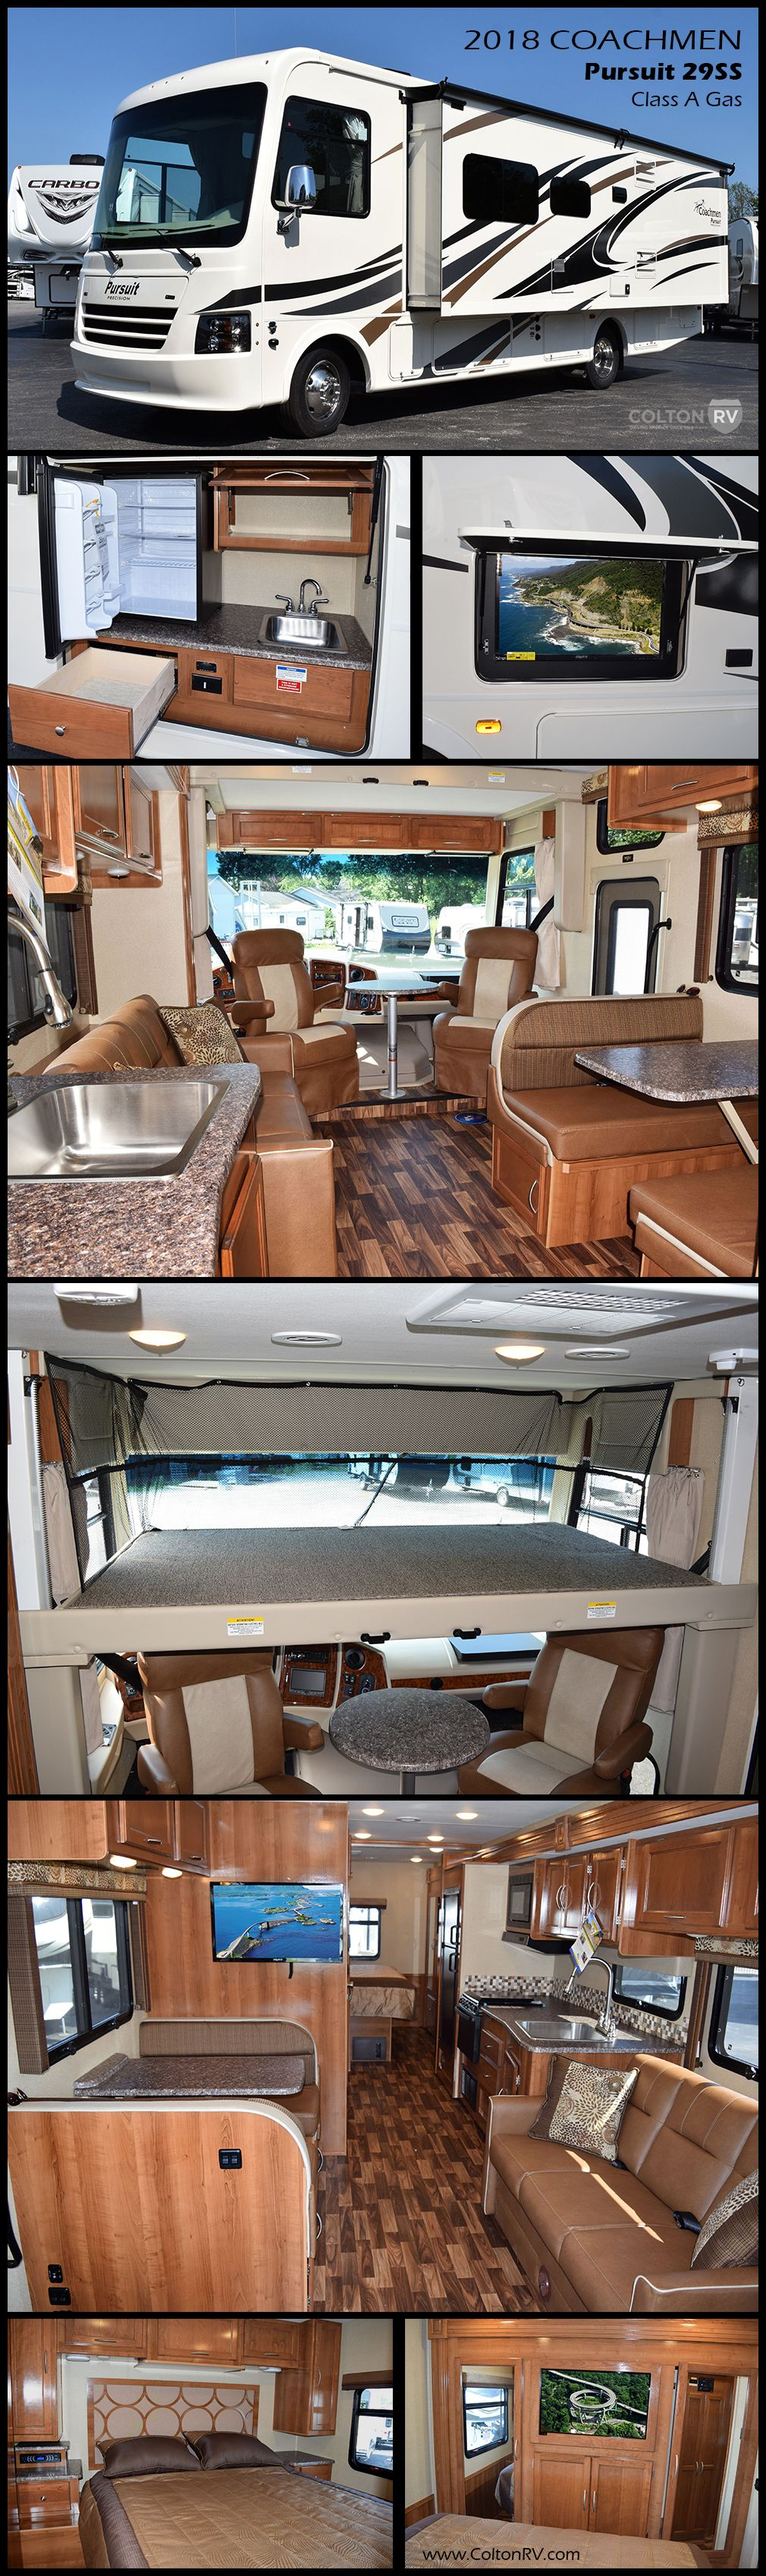 Take A Look At This 2018 Coachmen Pursuit 29ss Class A Gas